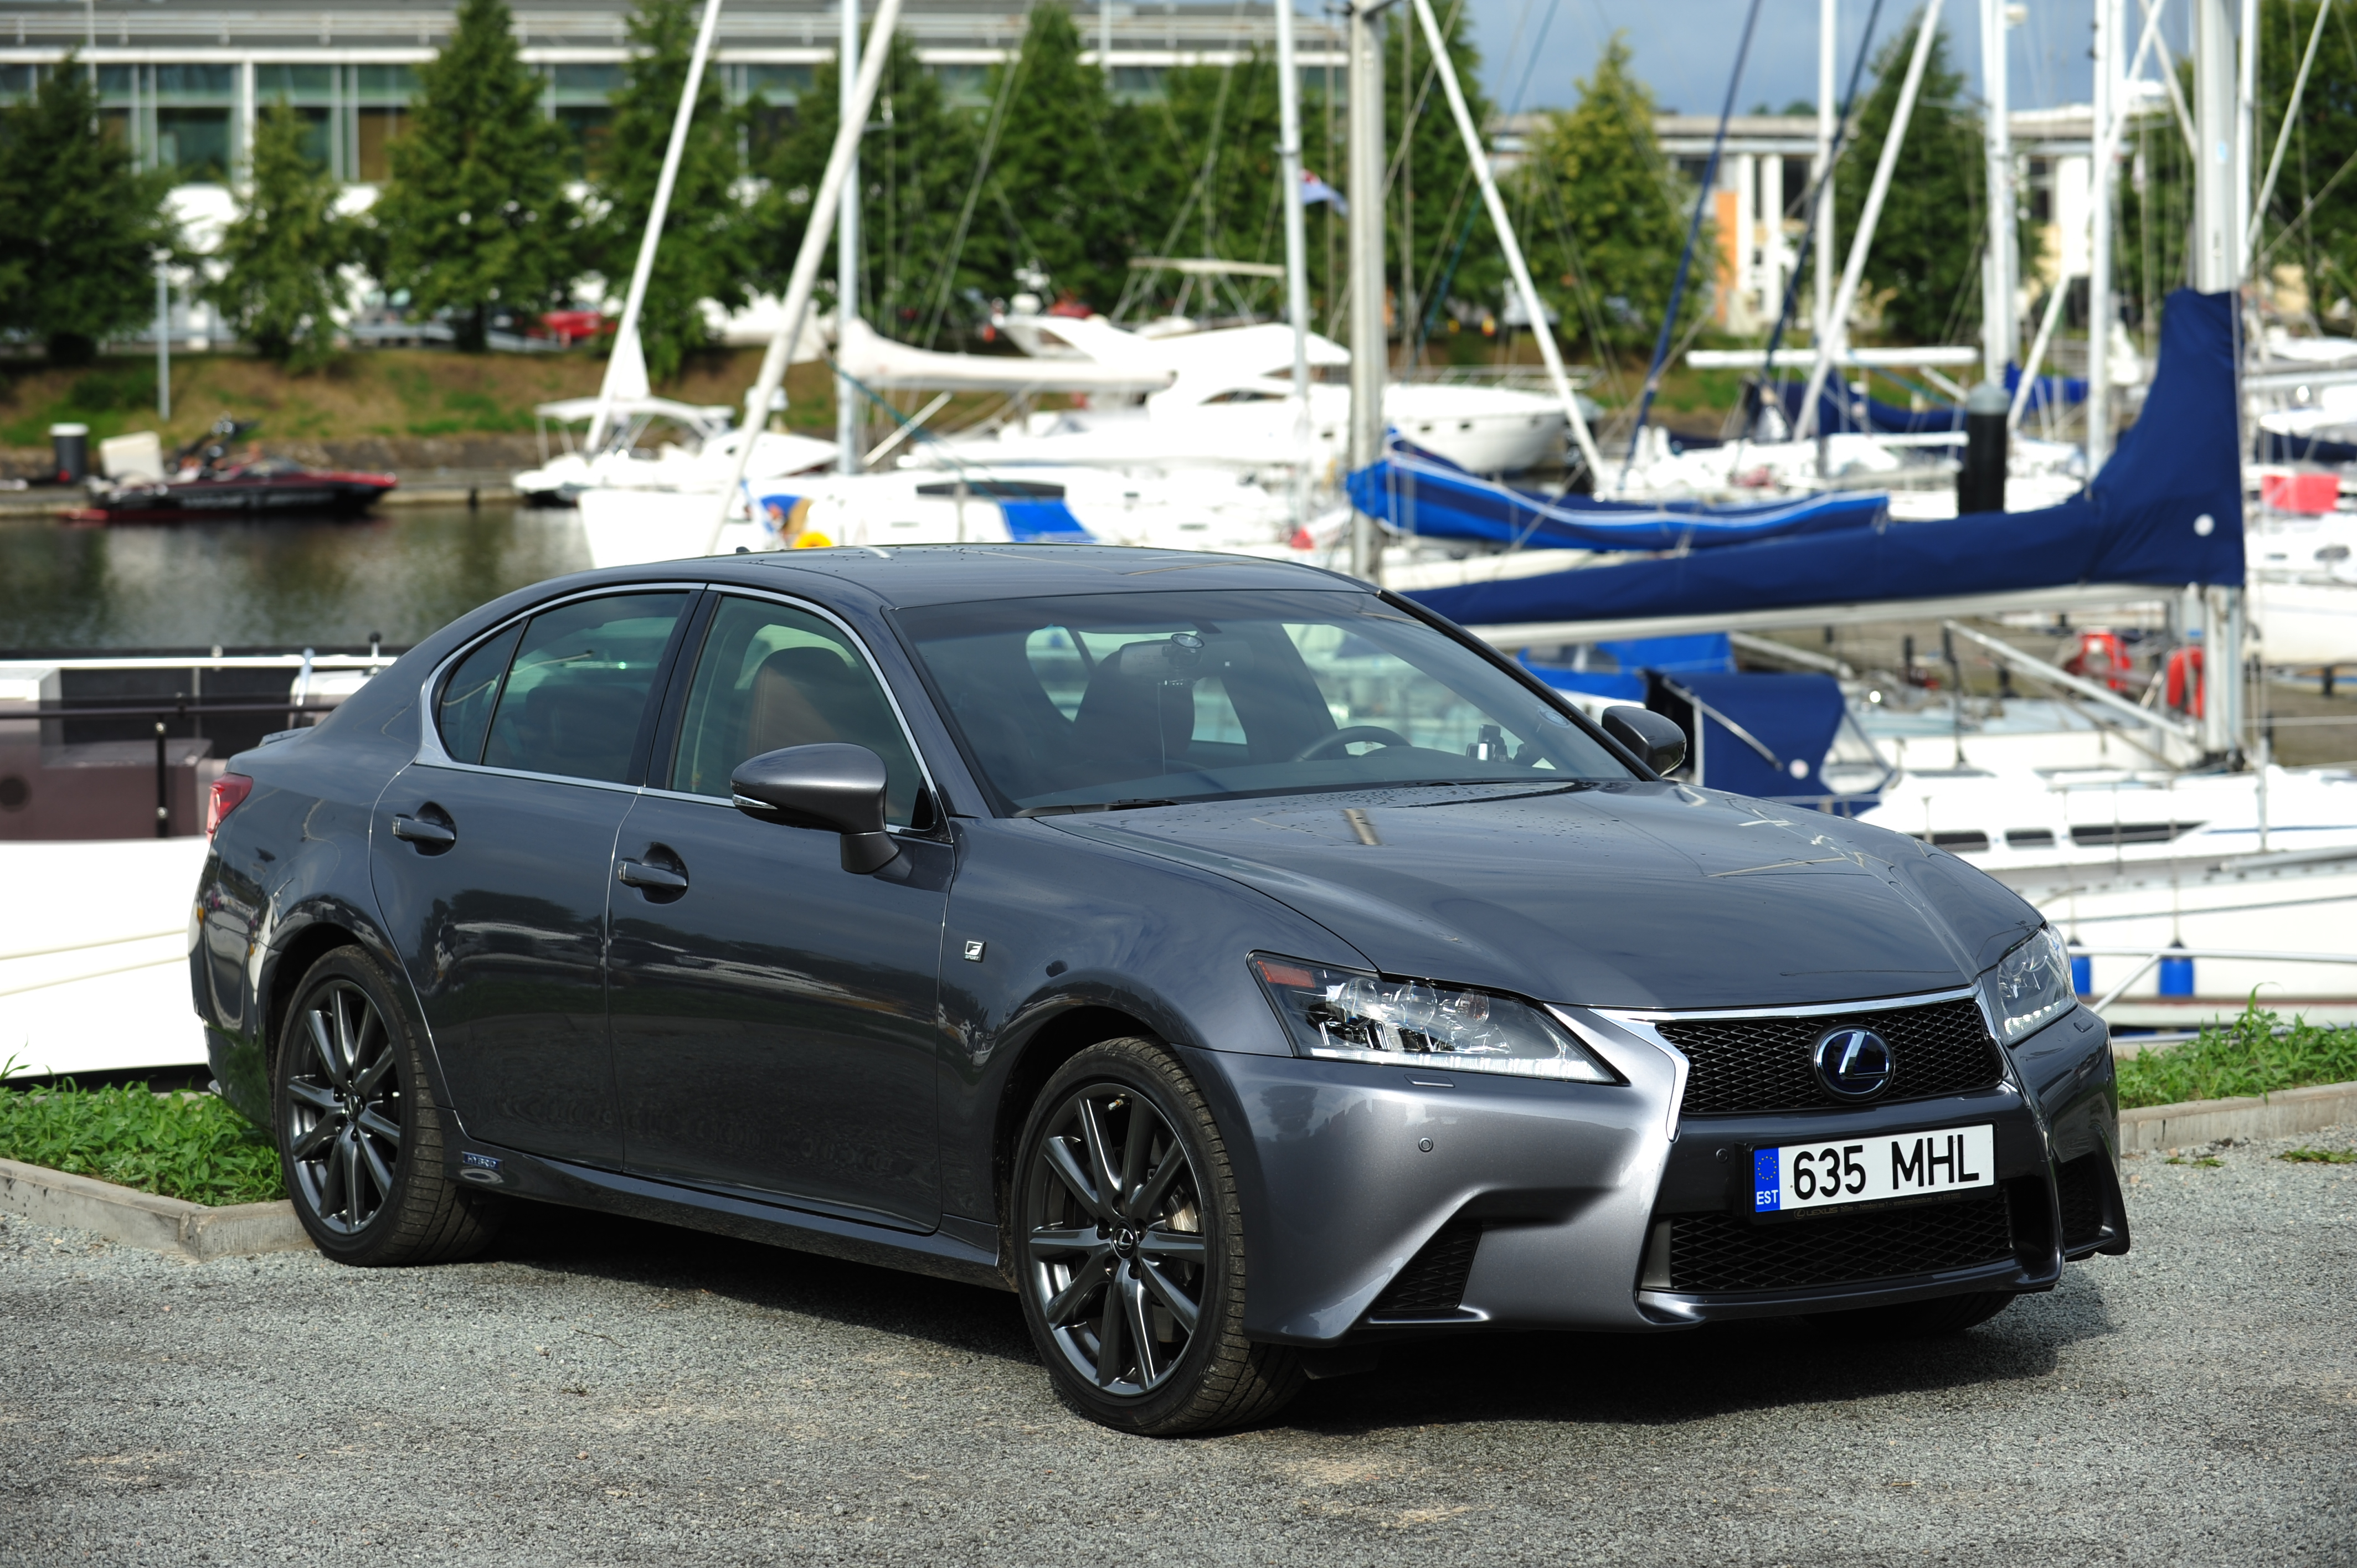 file lexus gs450h f sport 2012 10033261326 jpg wikimedia commons. Black Bedroom Furniture Sets. Home Design Ideas